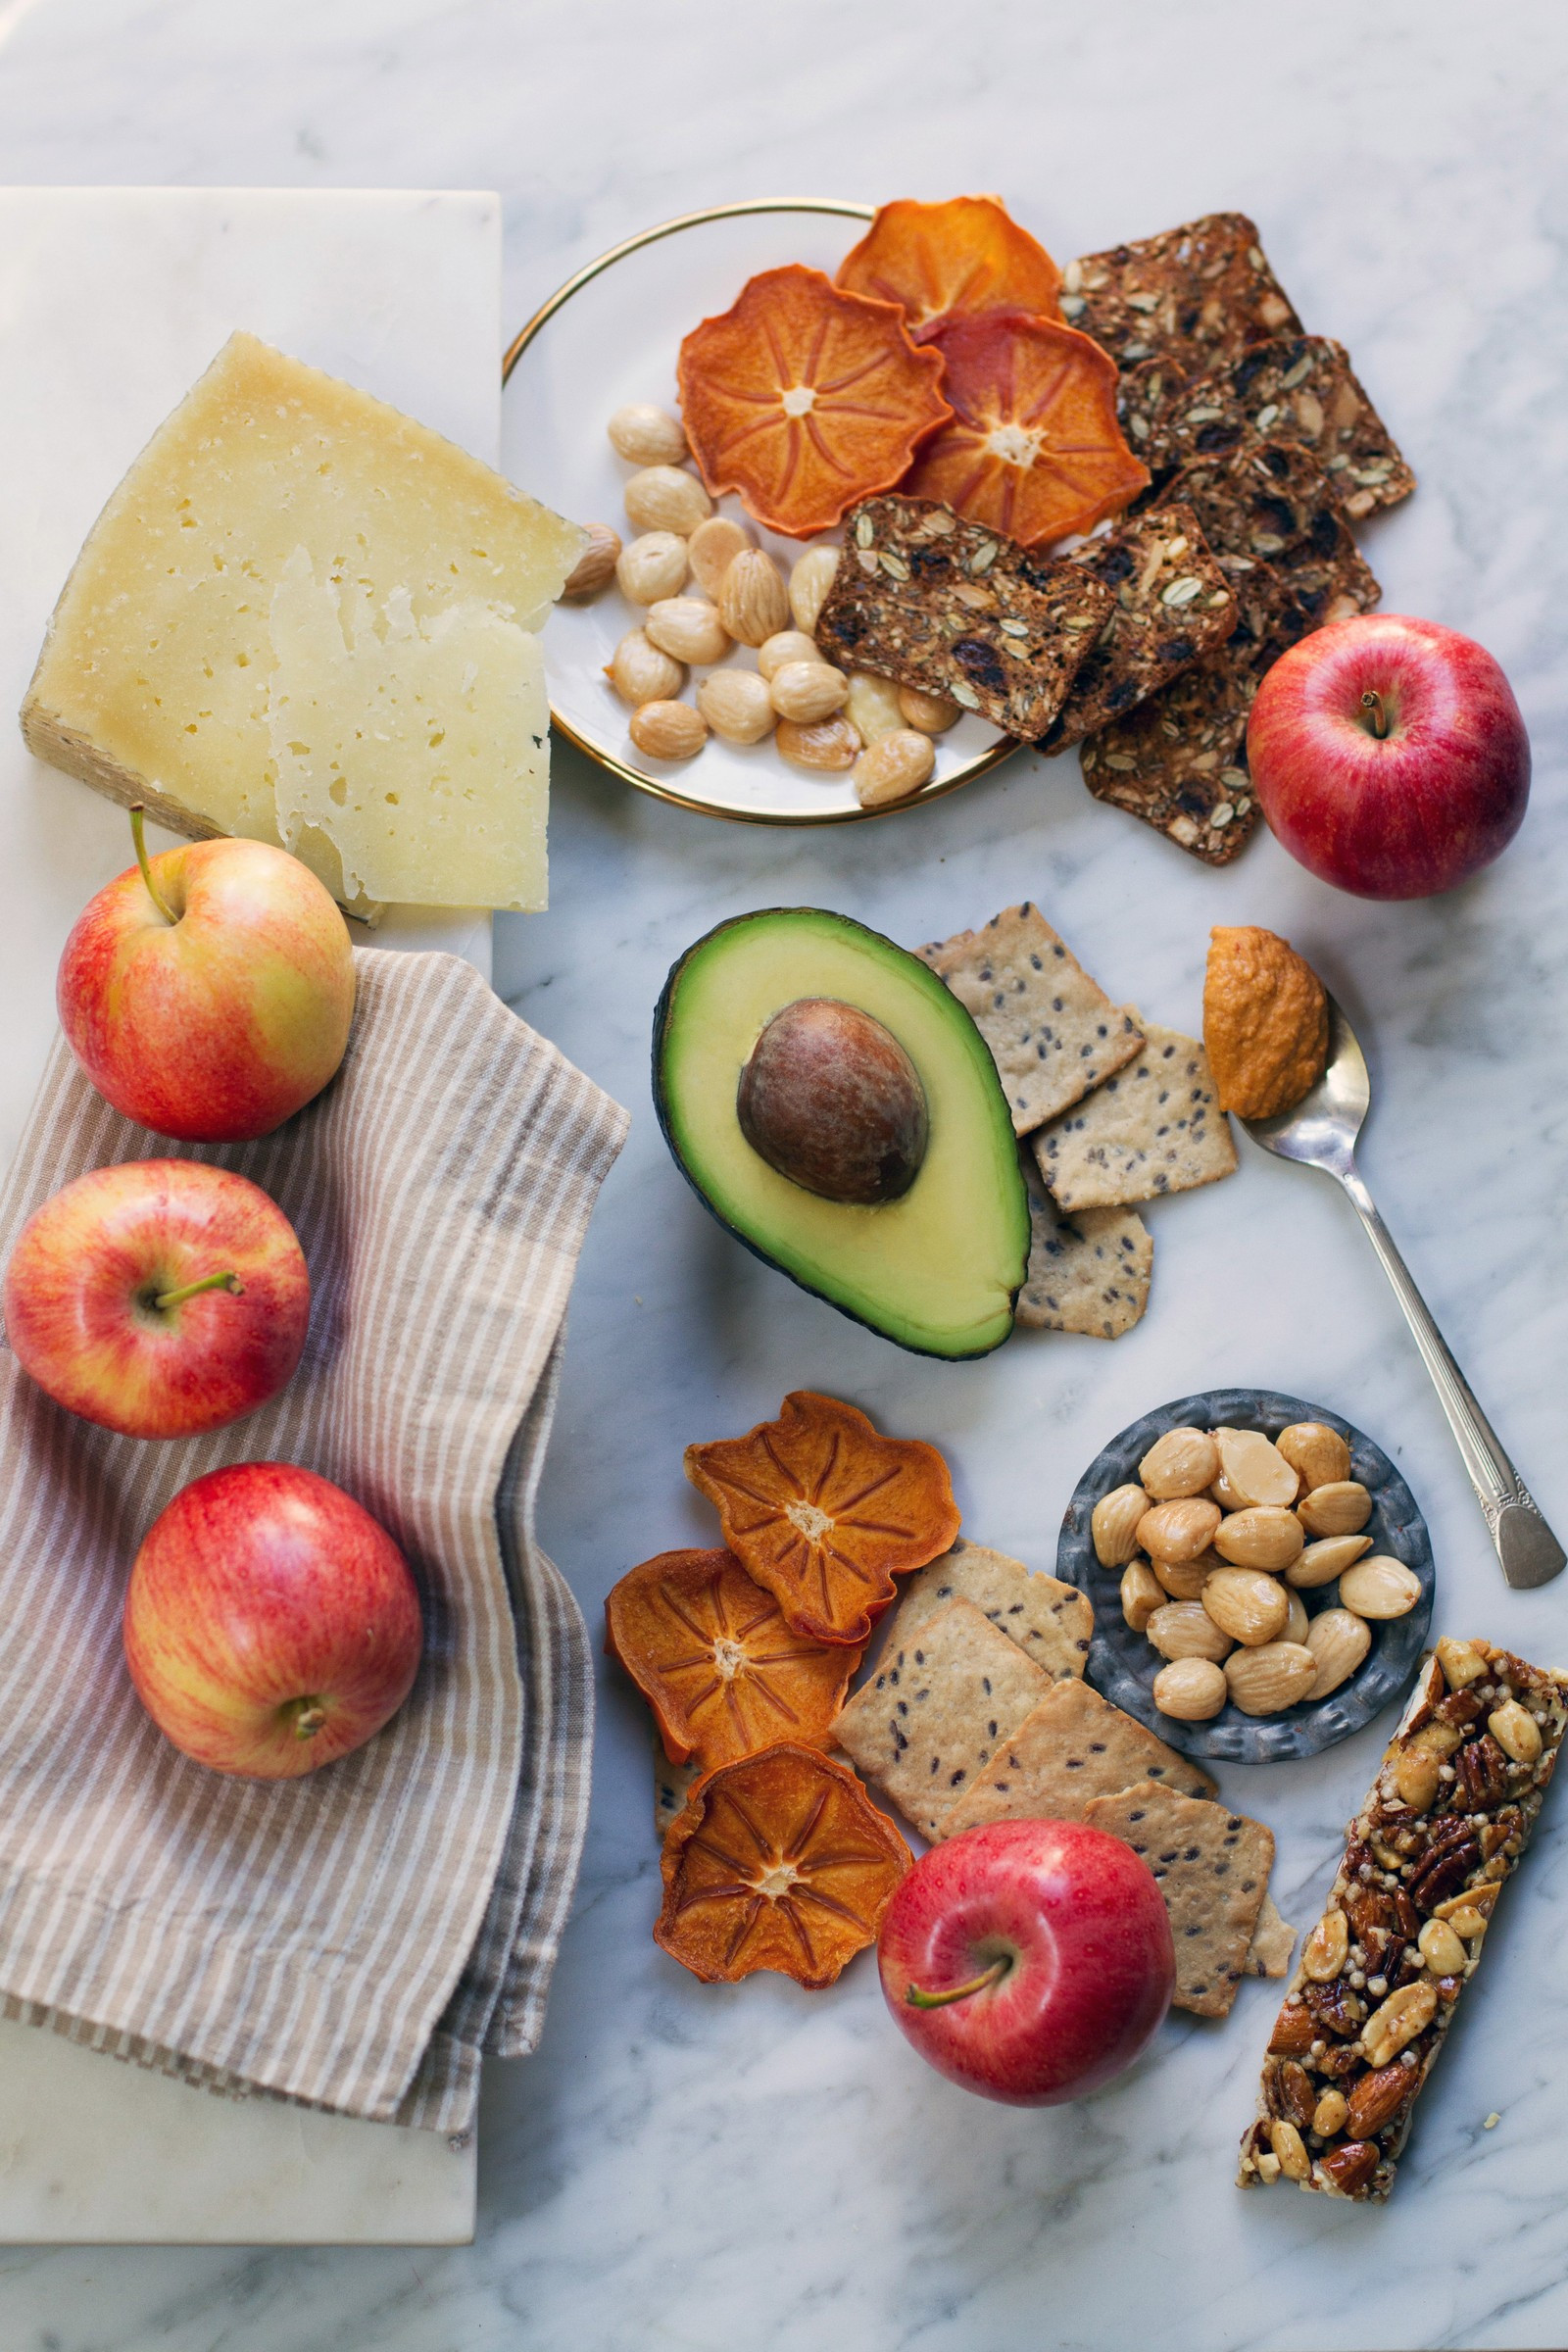 Image Of Healthy Snacks  Travel Snacks That Taste Better Than Airplane Food